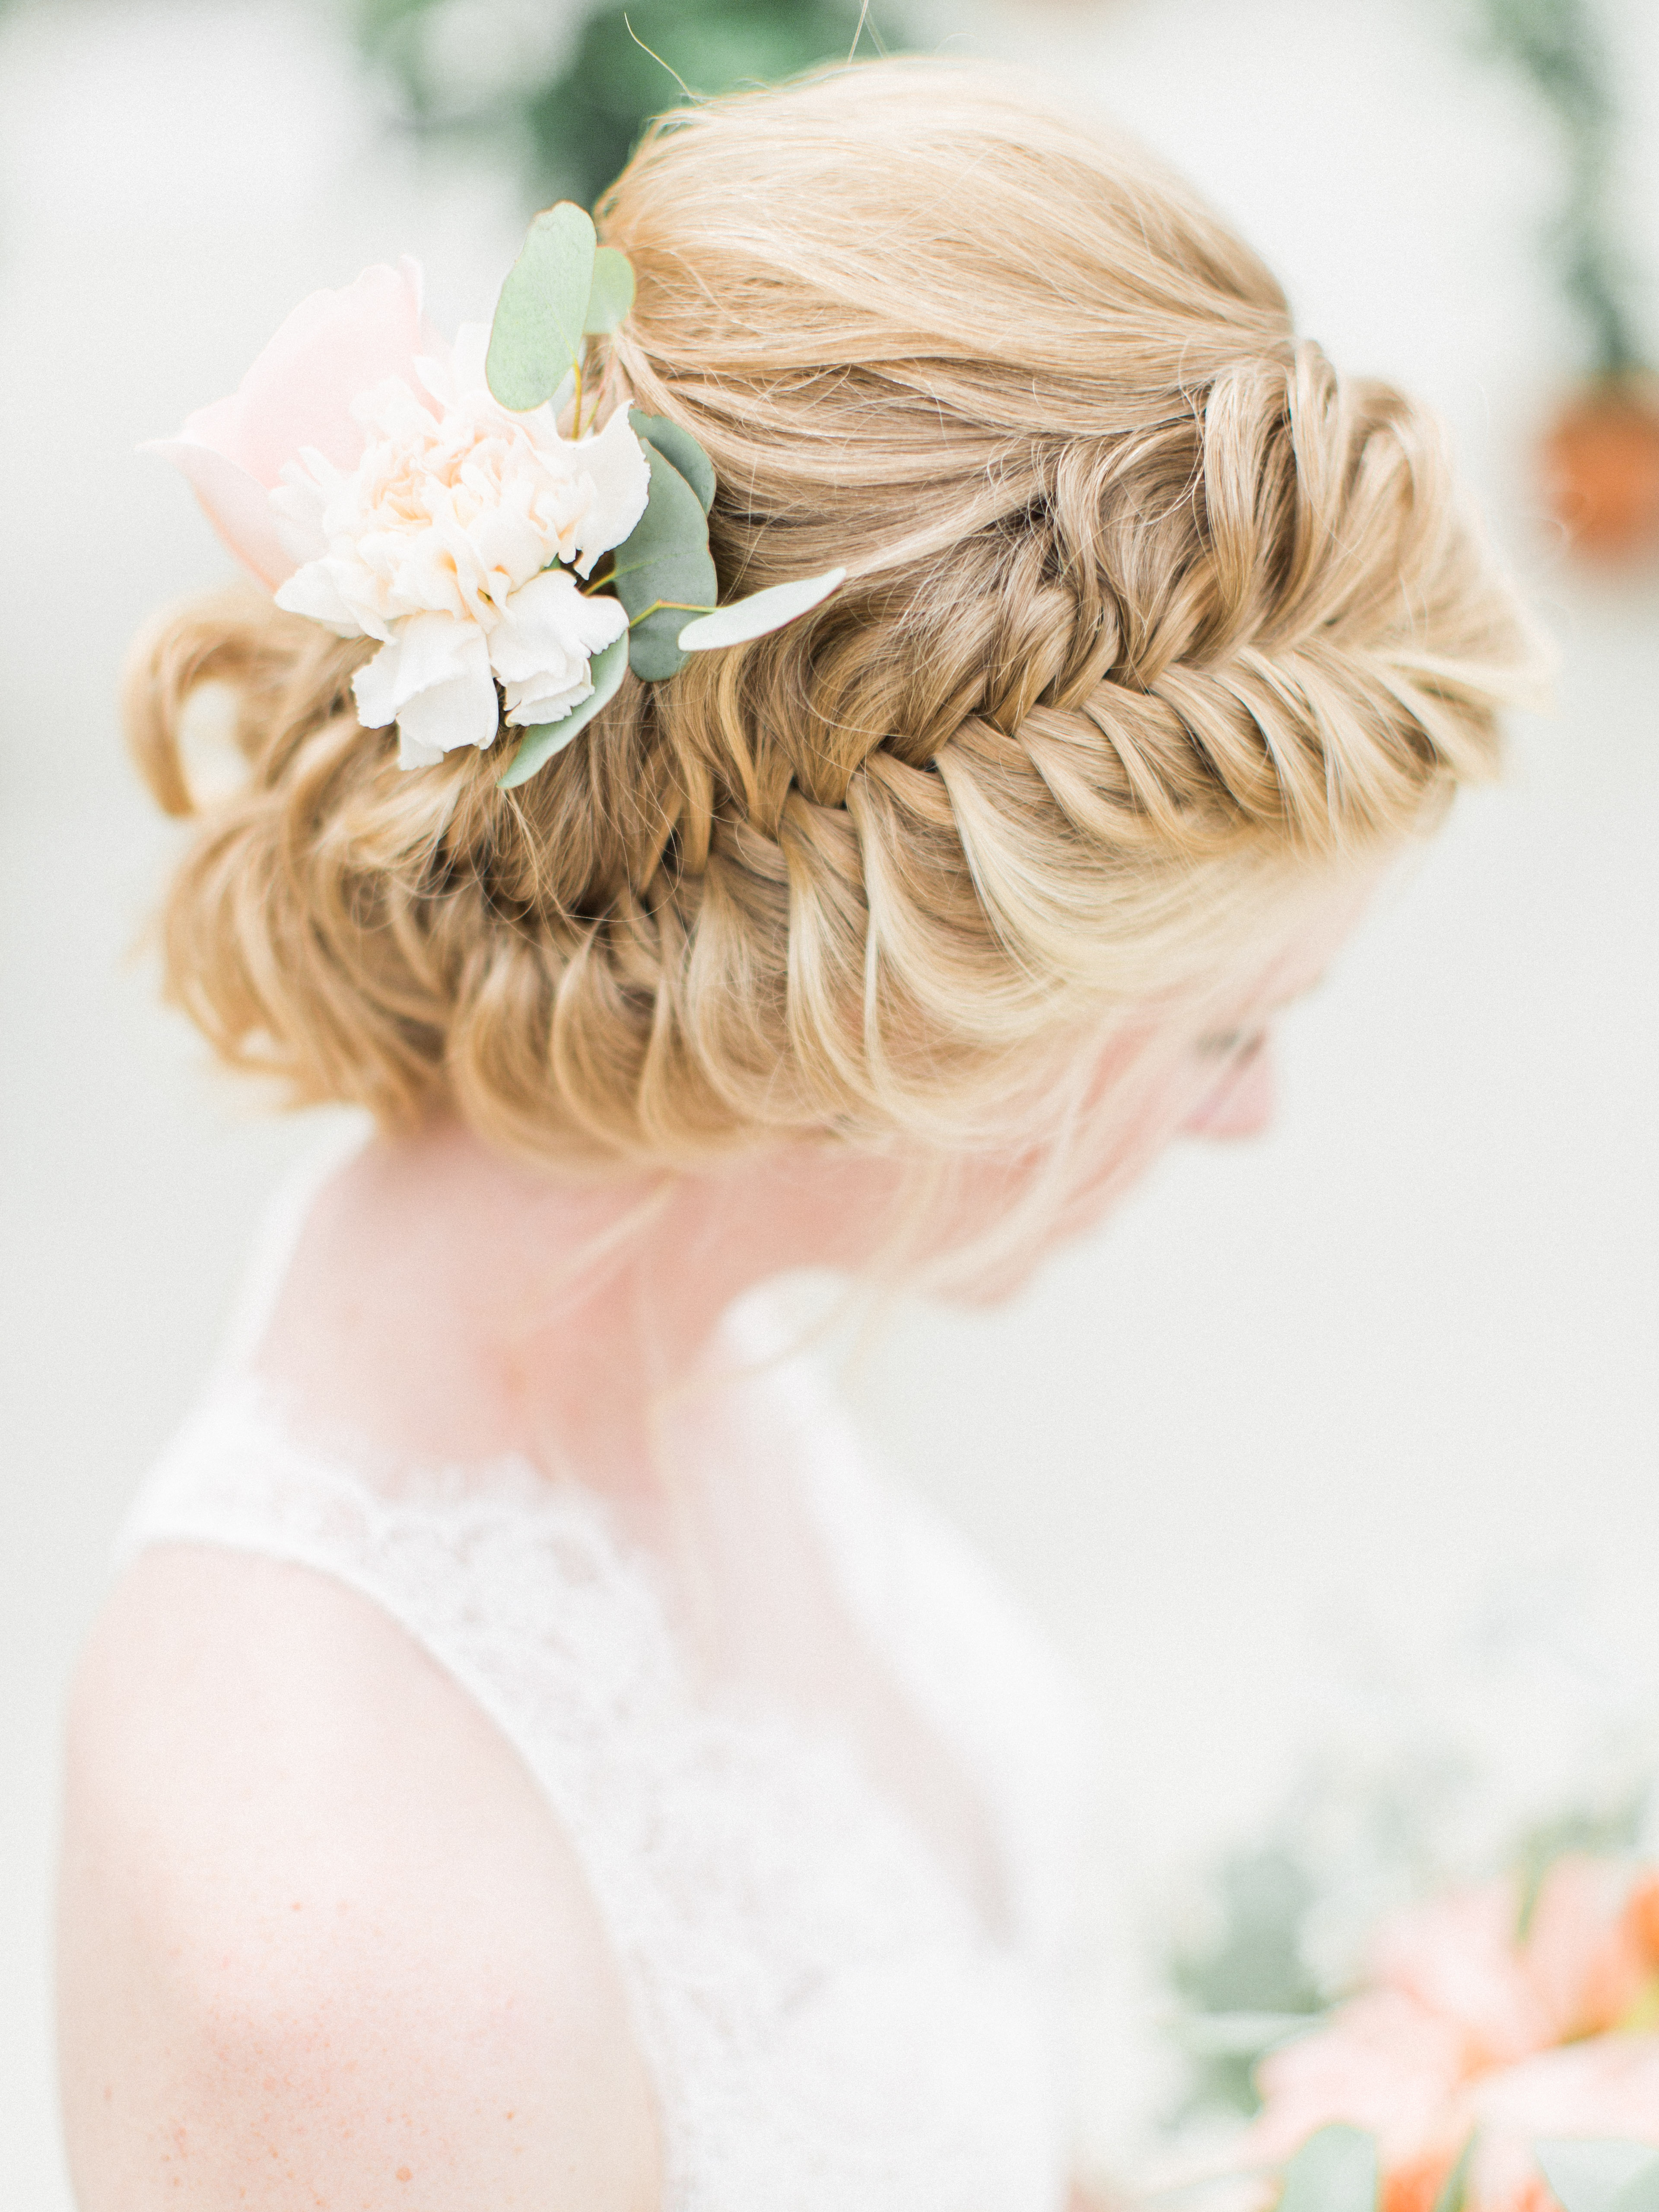 The Grown-Up Fishtail: Incorporating a Braid into a Wedding Updo